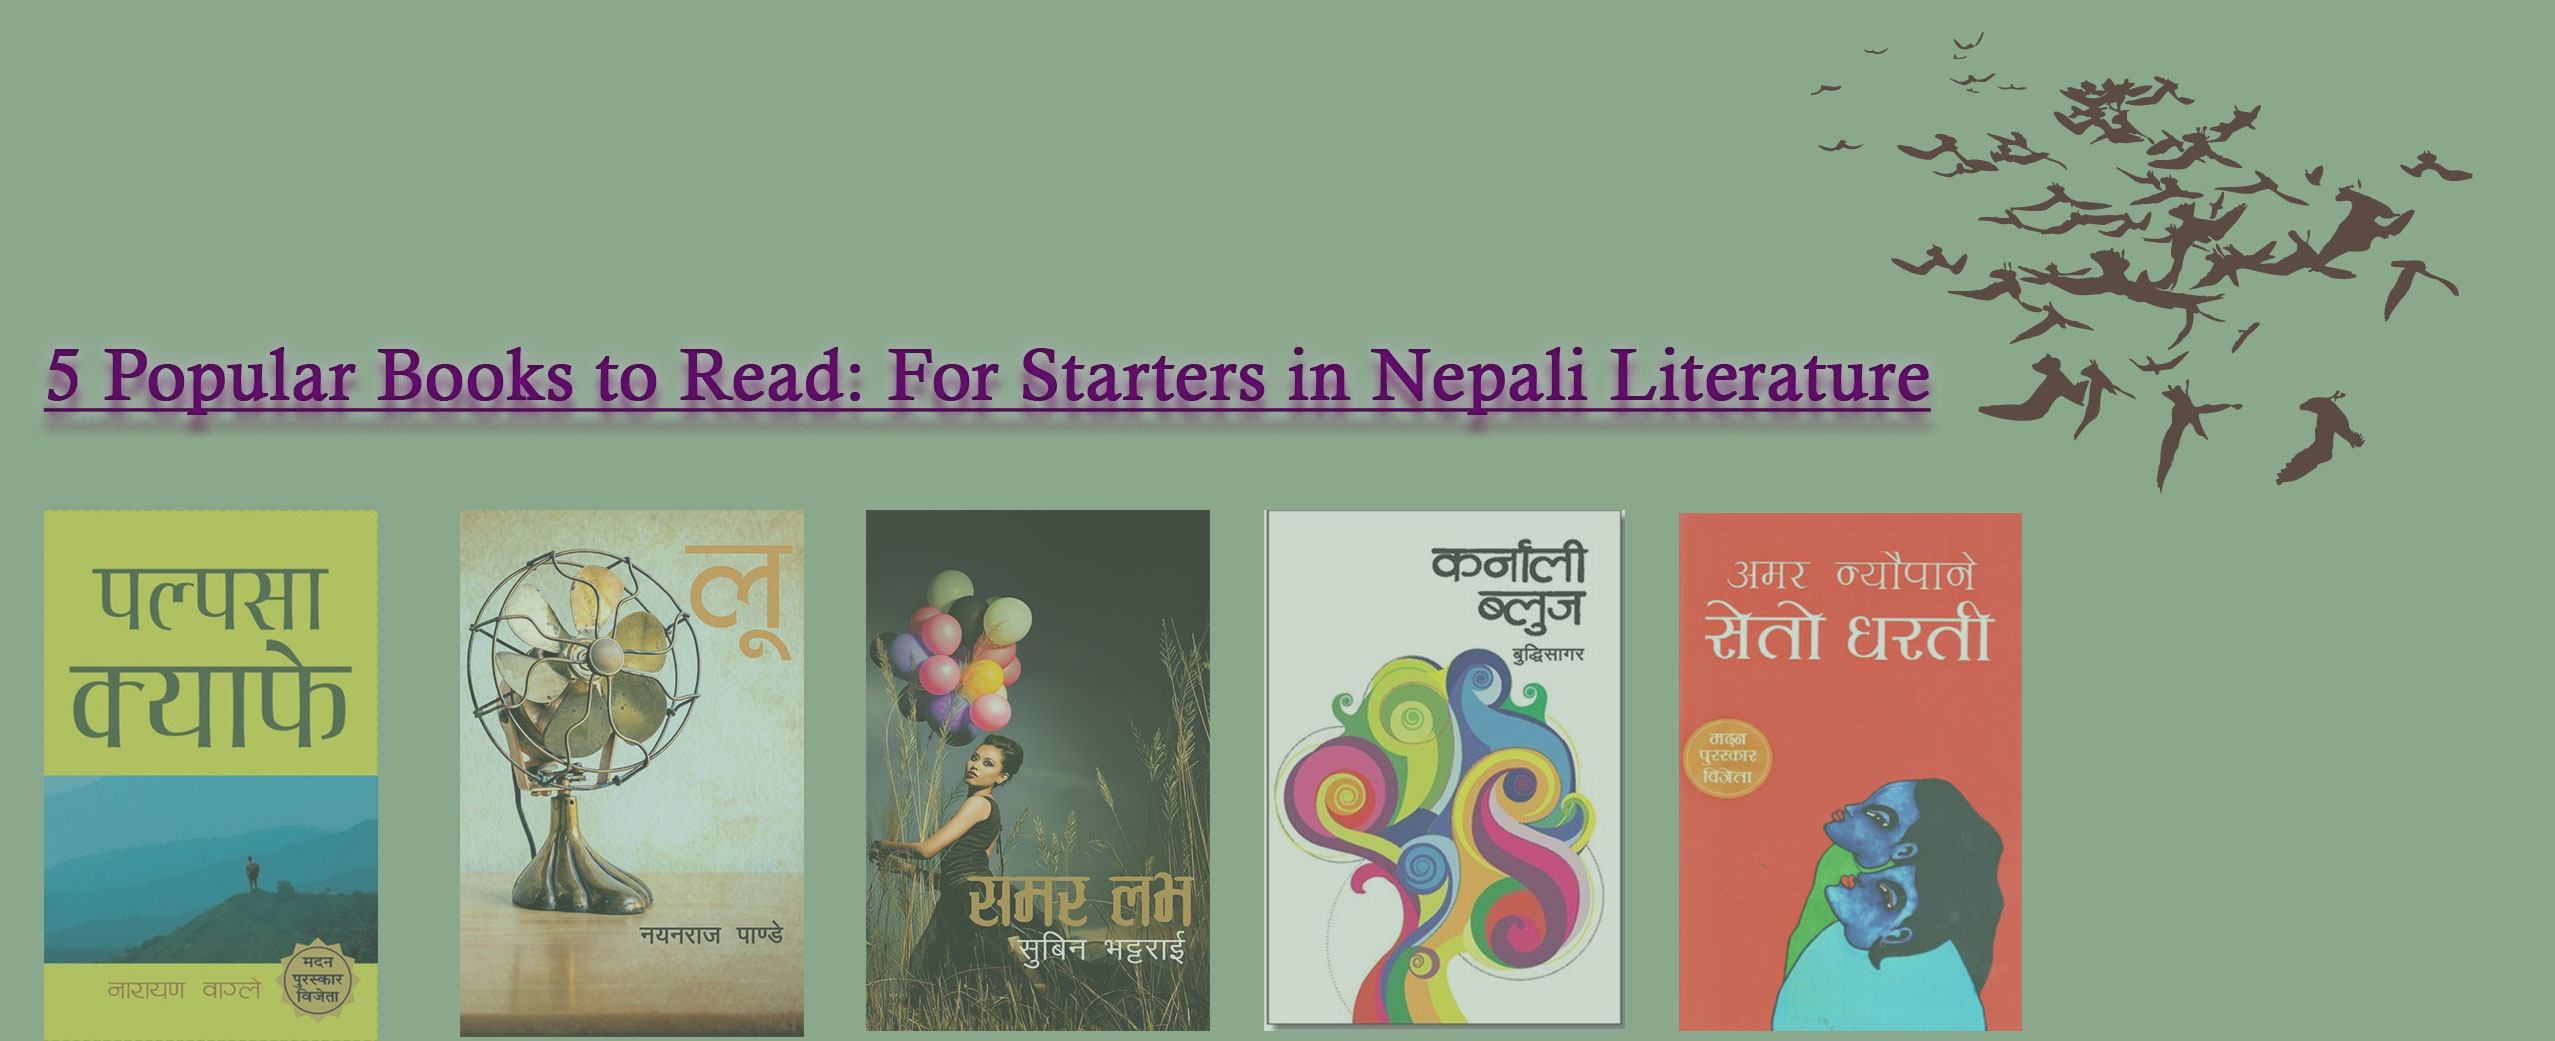 5 Popular Books To Read For Starters In Nepali Literature Nepali Bytes